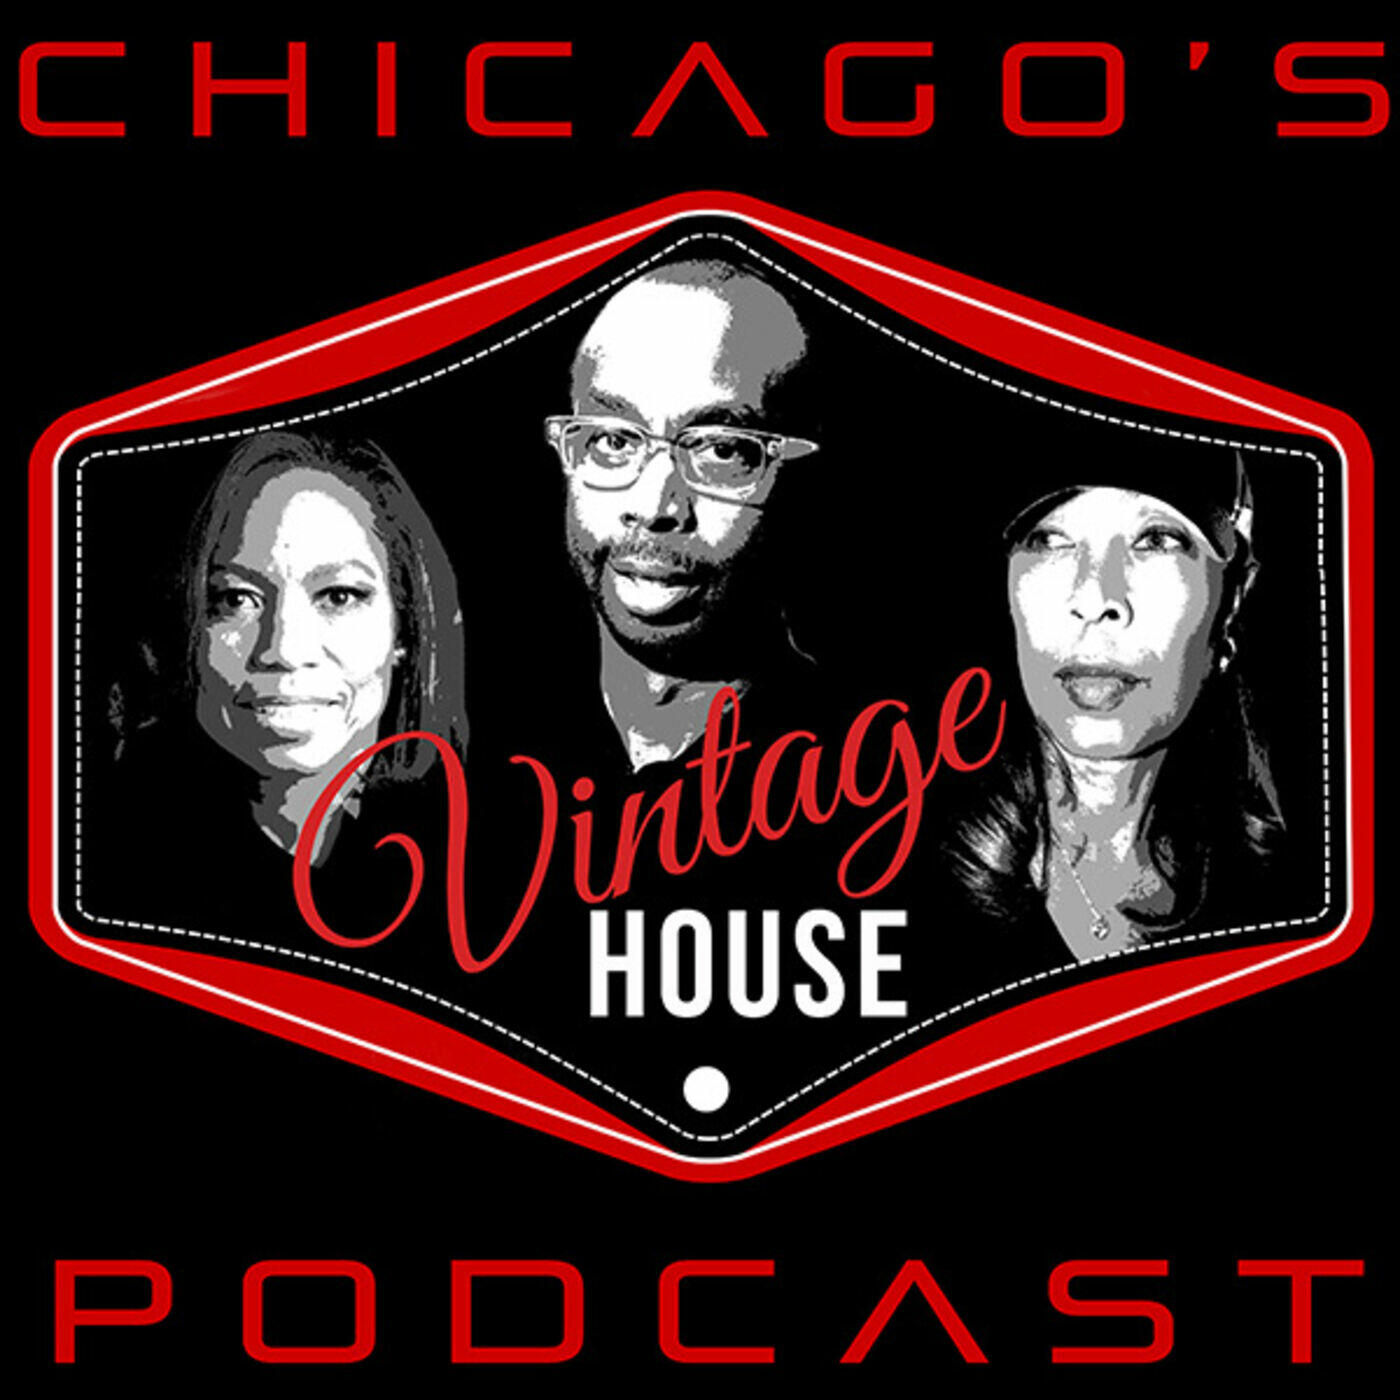 VINTAGE HOUSE on WNUR 89.3FM   Preserve and Celebrate House Legends Lives and Careers